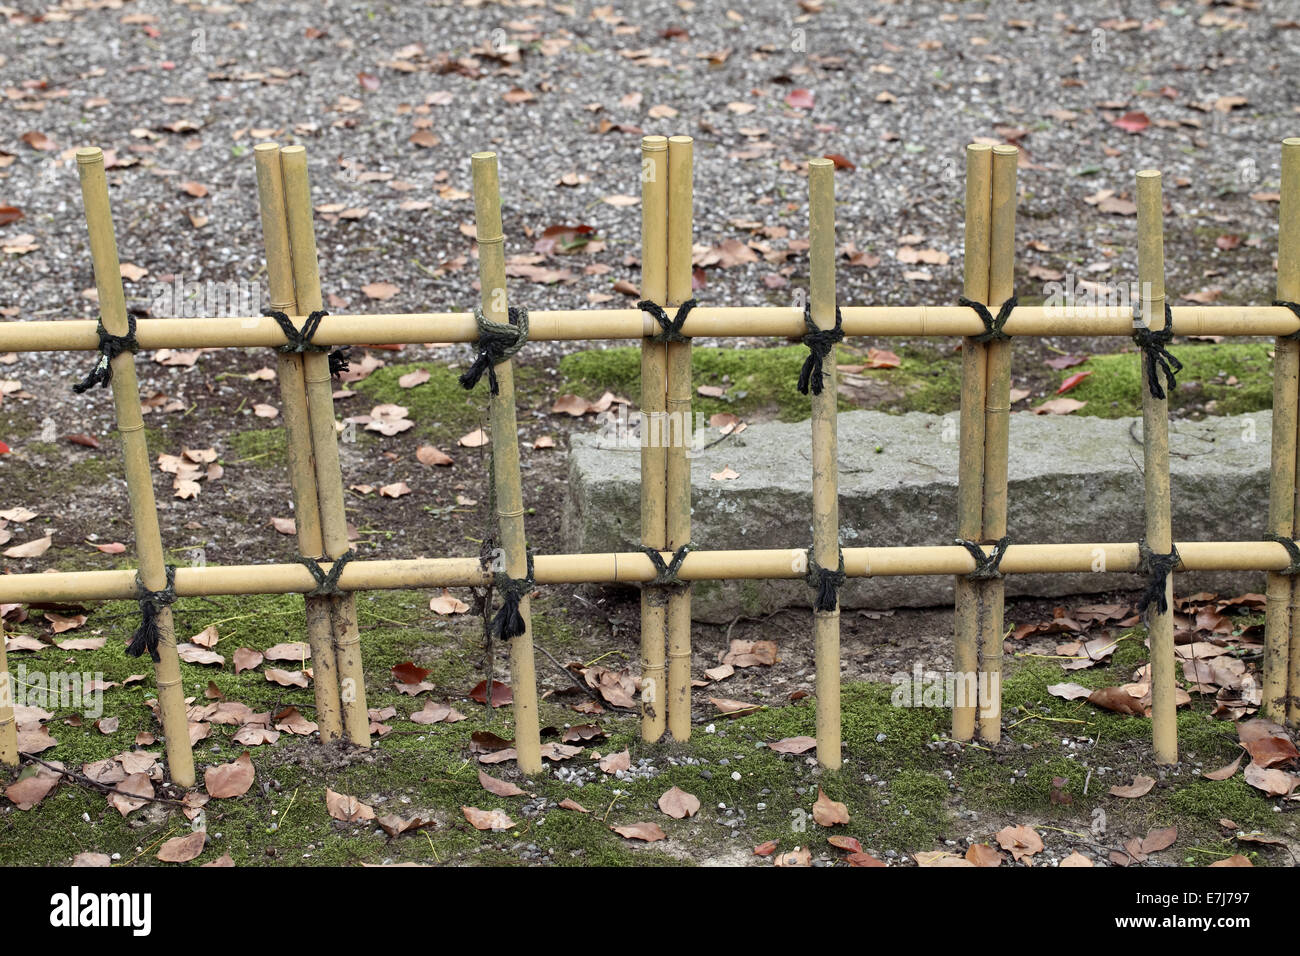 Bamboo Fence In A Japanese Garden Stock Photo: 73544947   Alamy